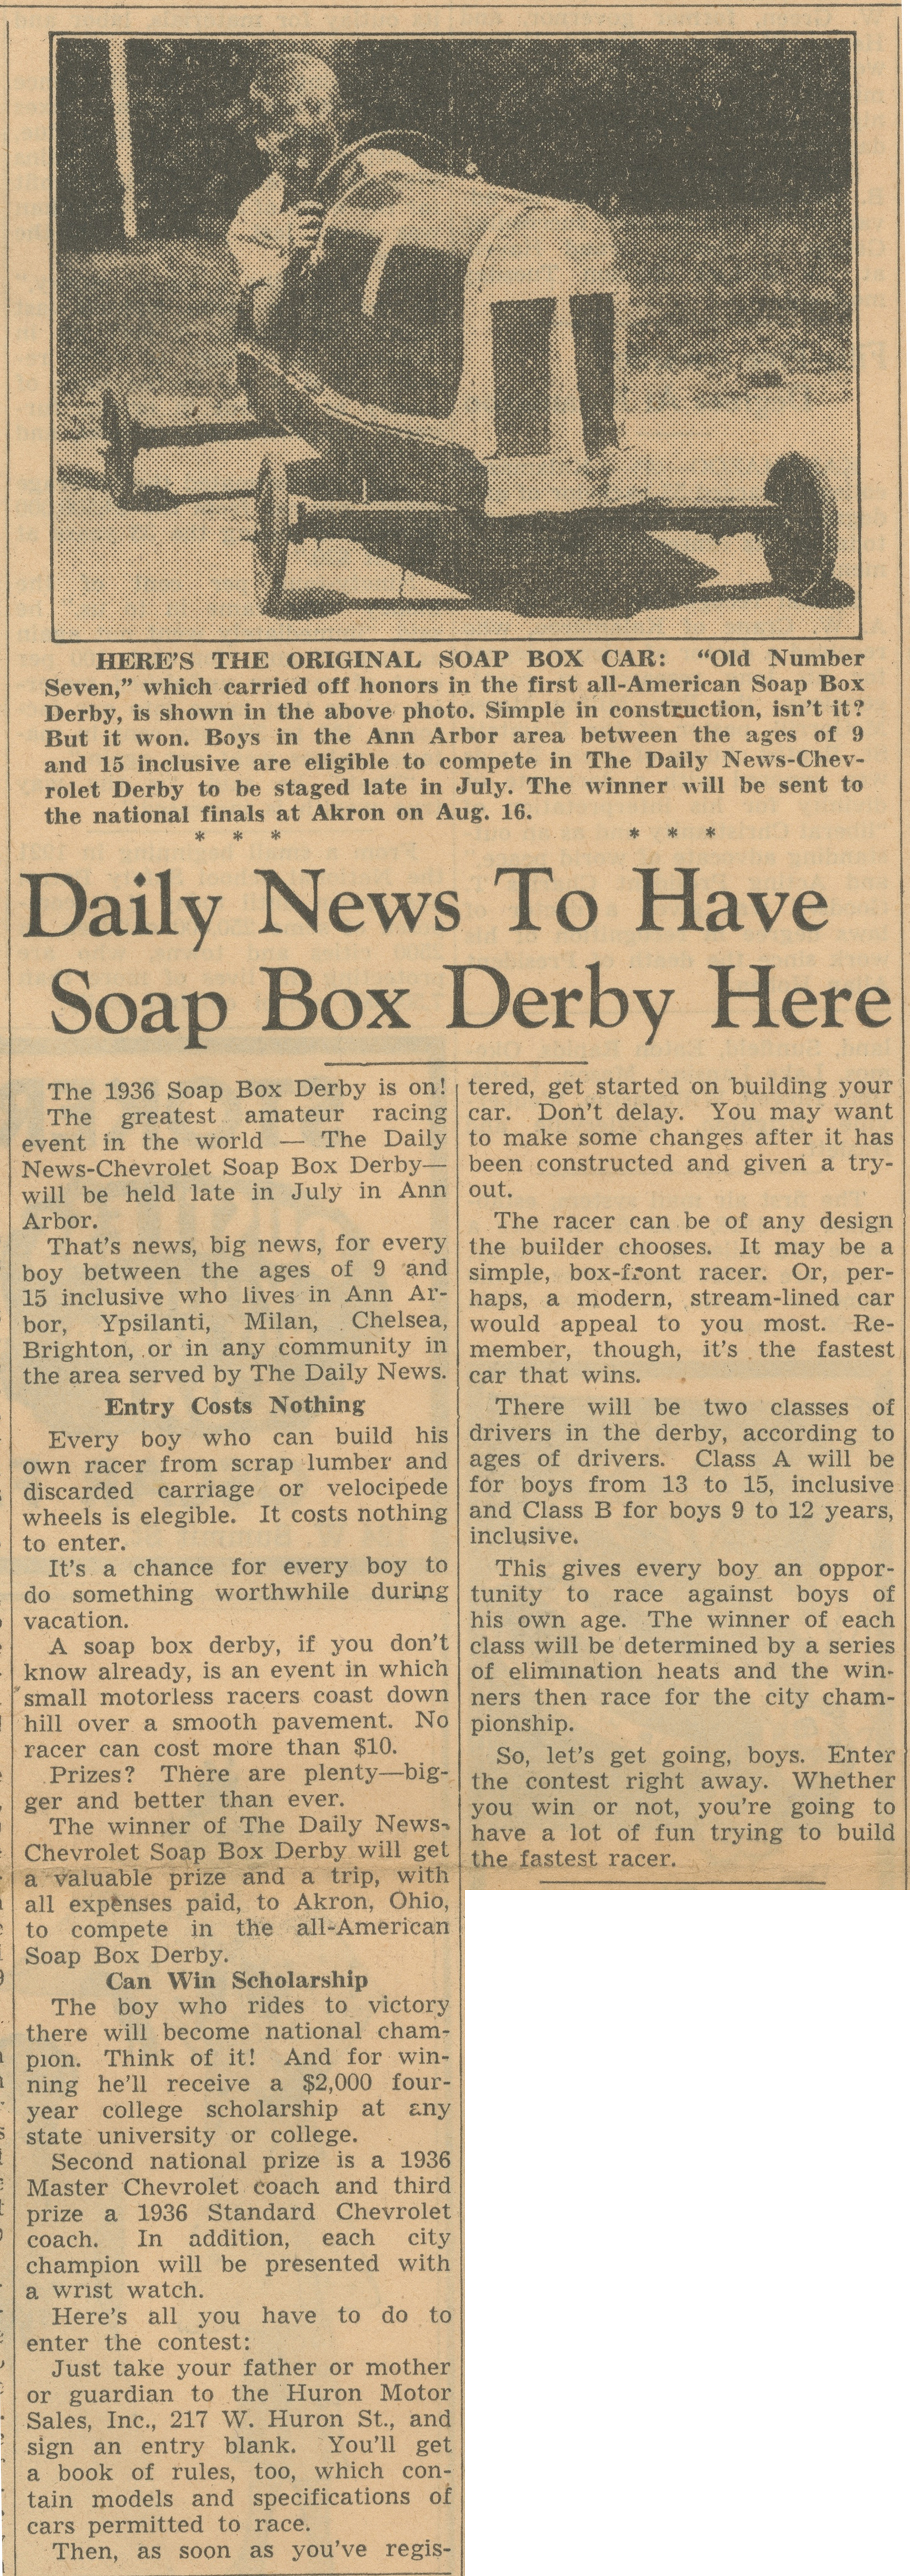 Daily News To Have Soap Box Derby Here image